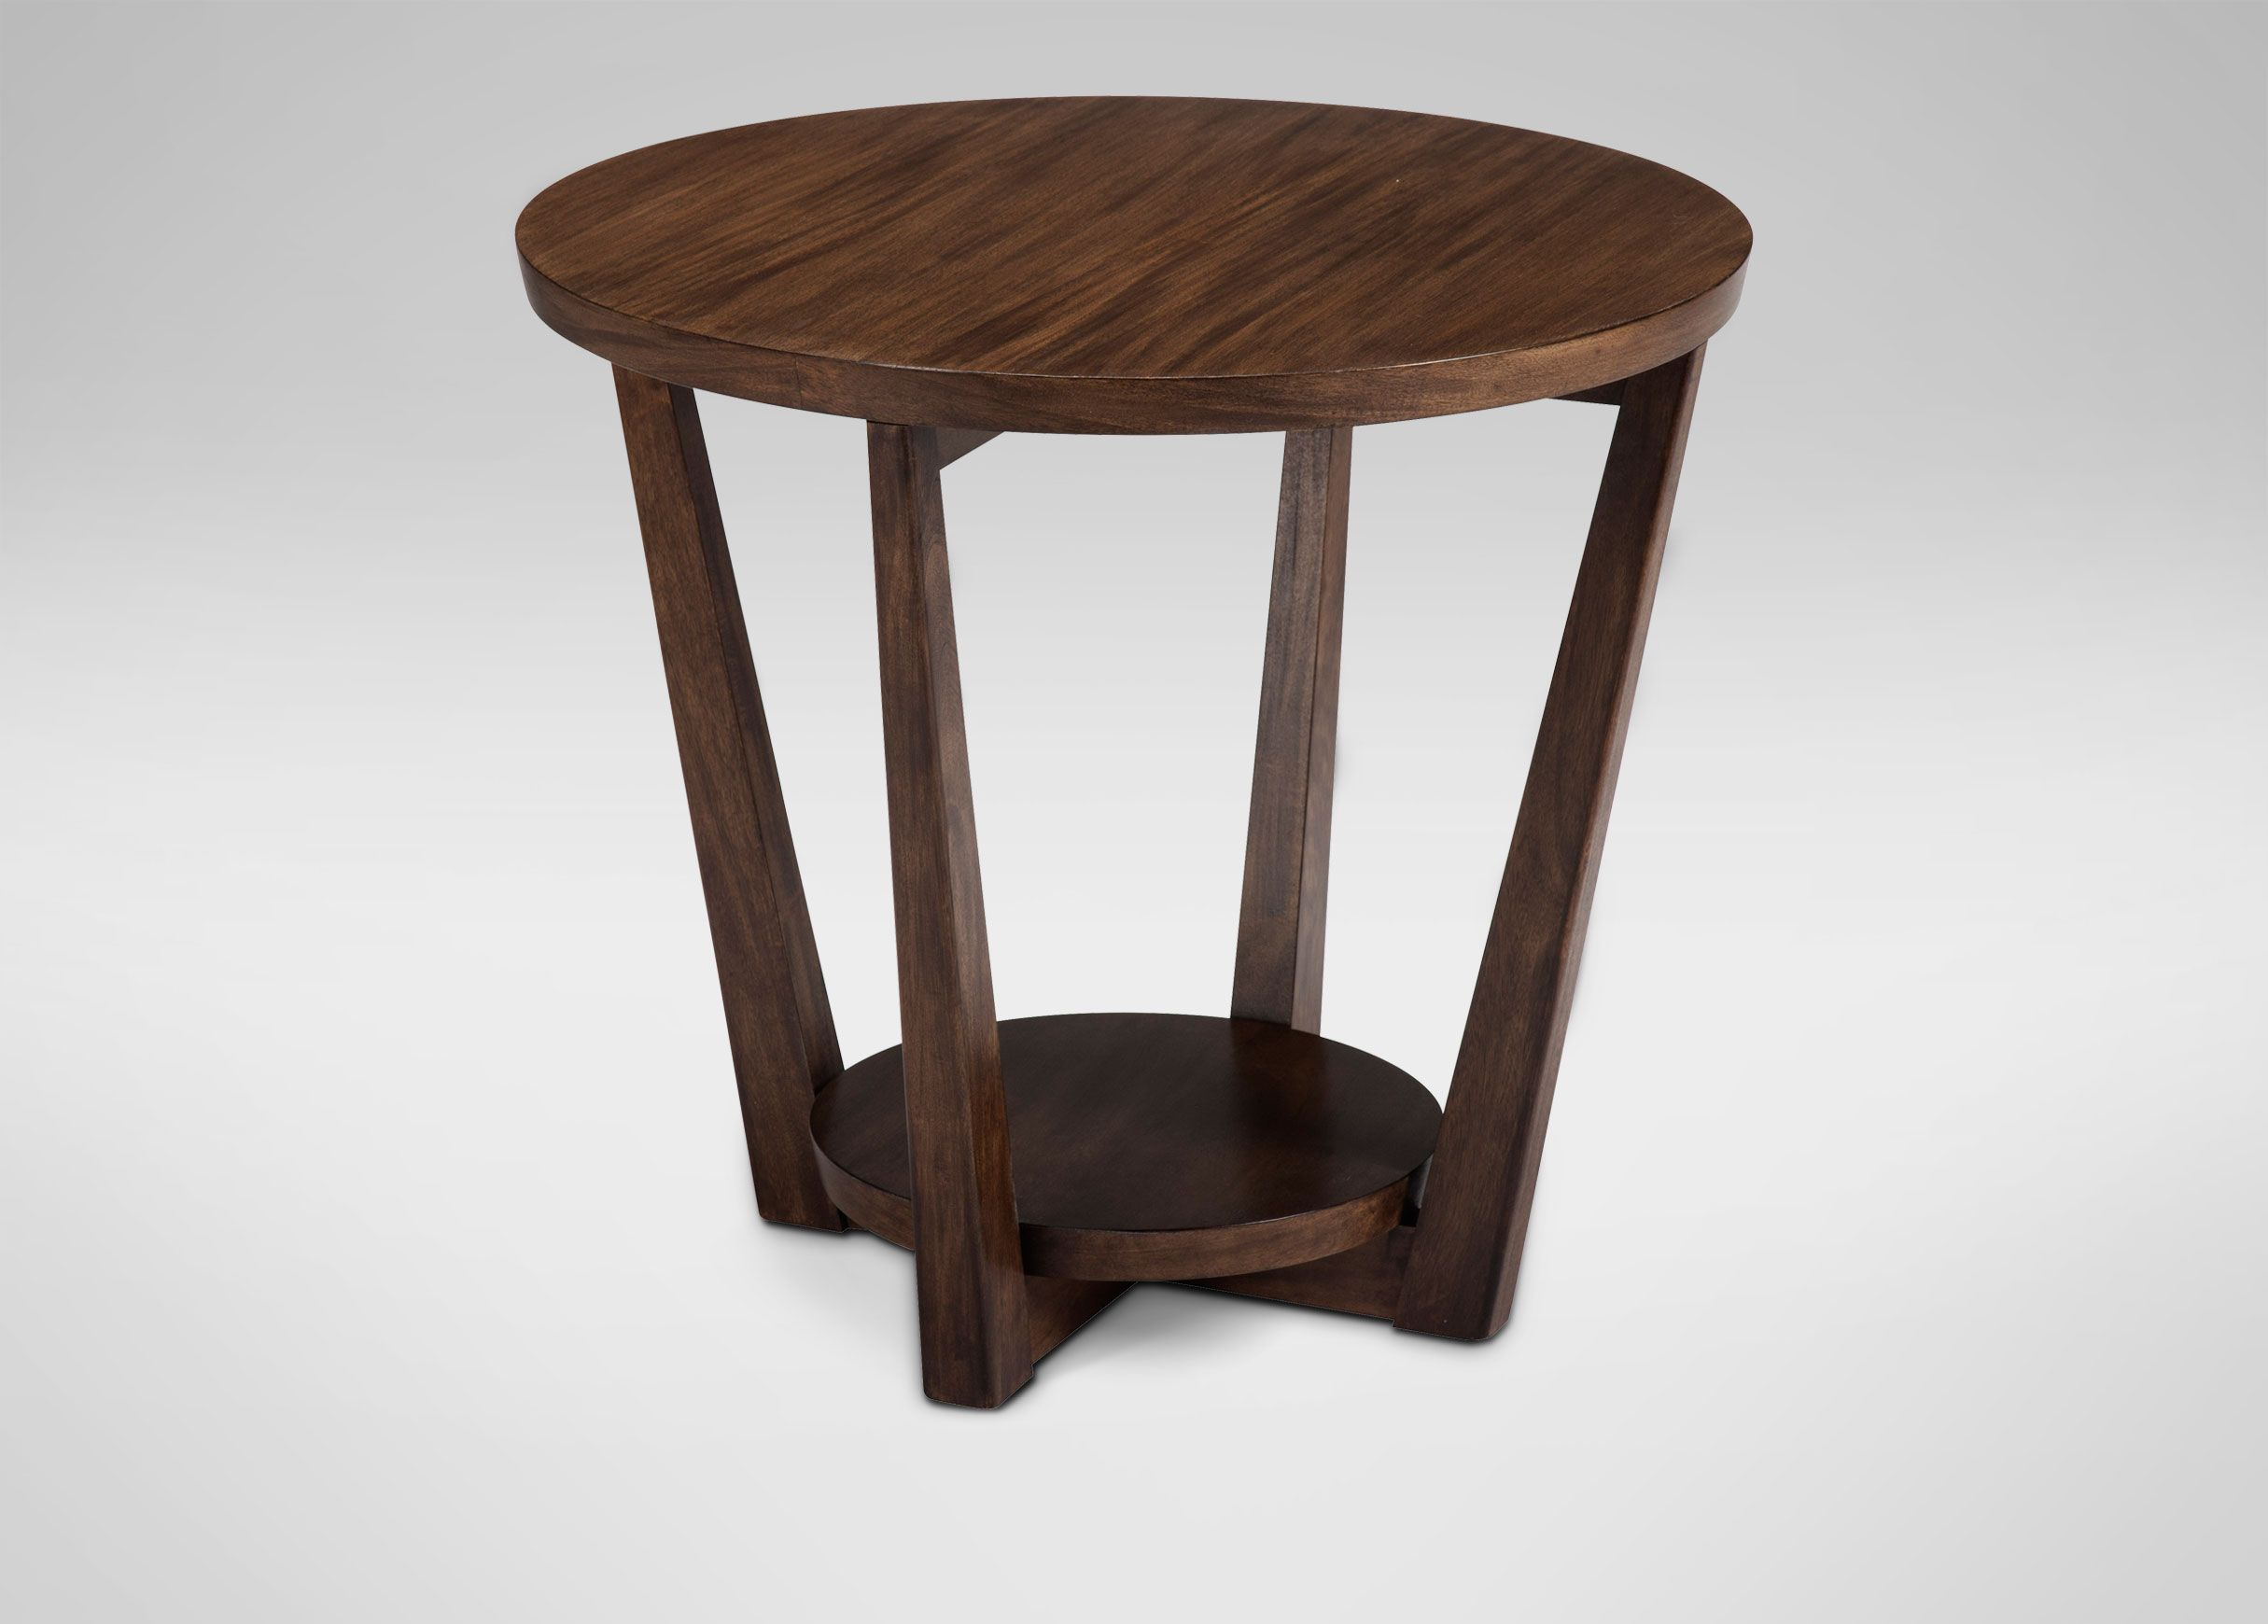 Glendale Round End Table Accent Table Decor Side Table Accent Table [ 1740 x 2430 Pixel ]